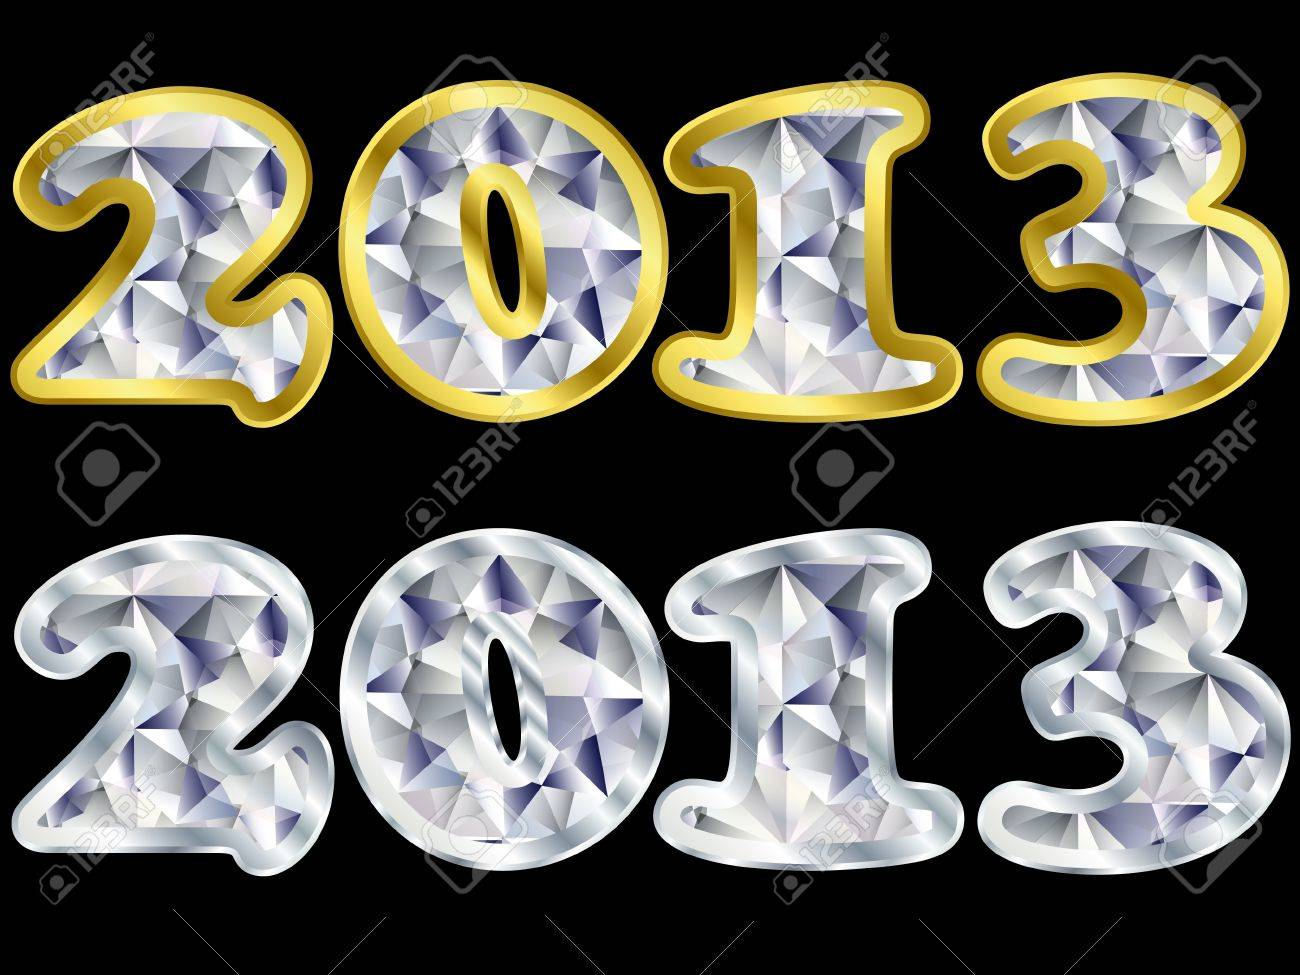 New year 2013 golden and silver with diamonds, vector illustratio Stock Vector - 11938108